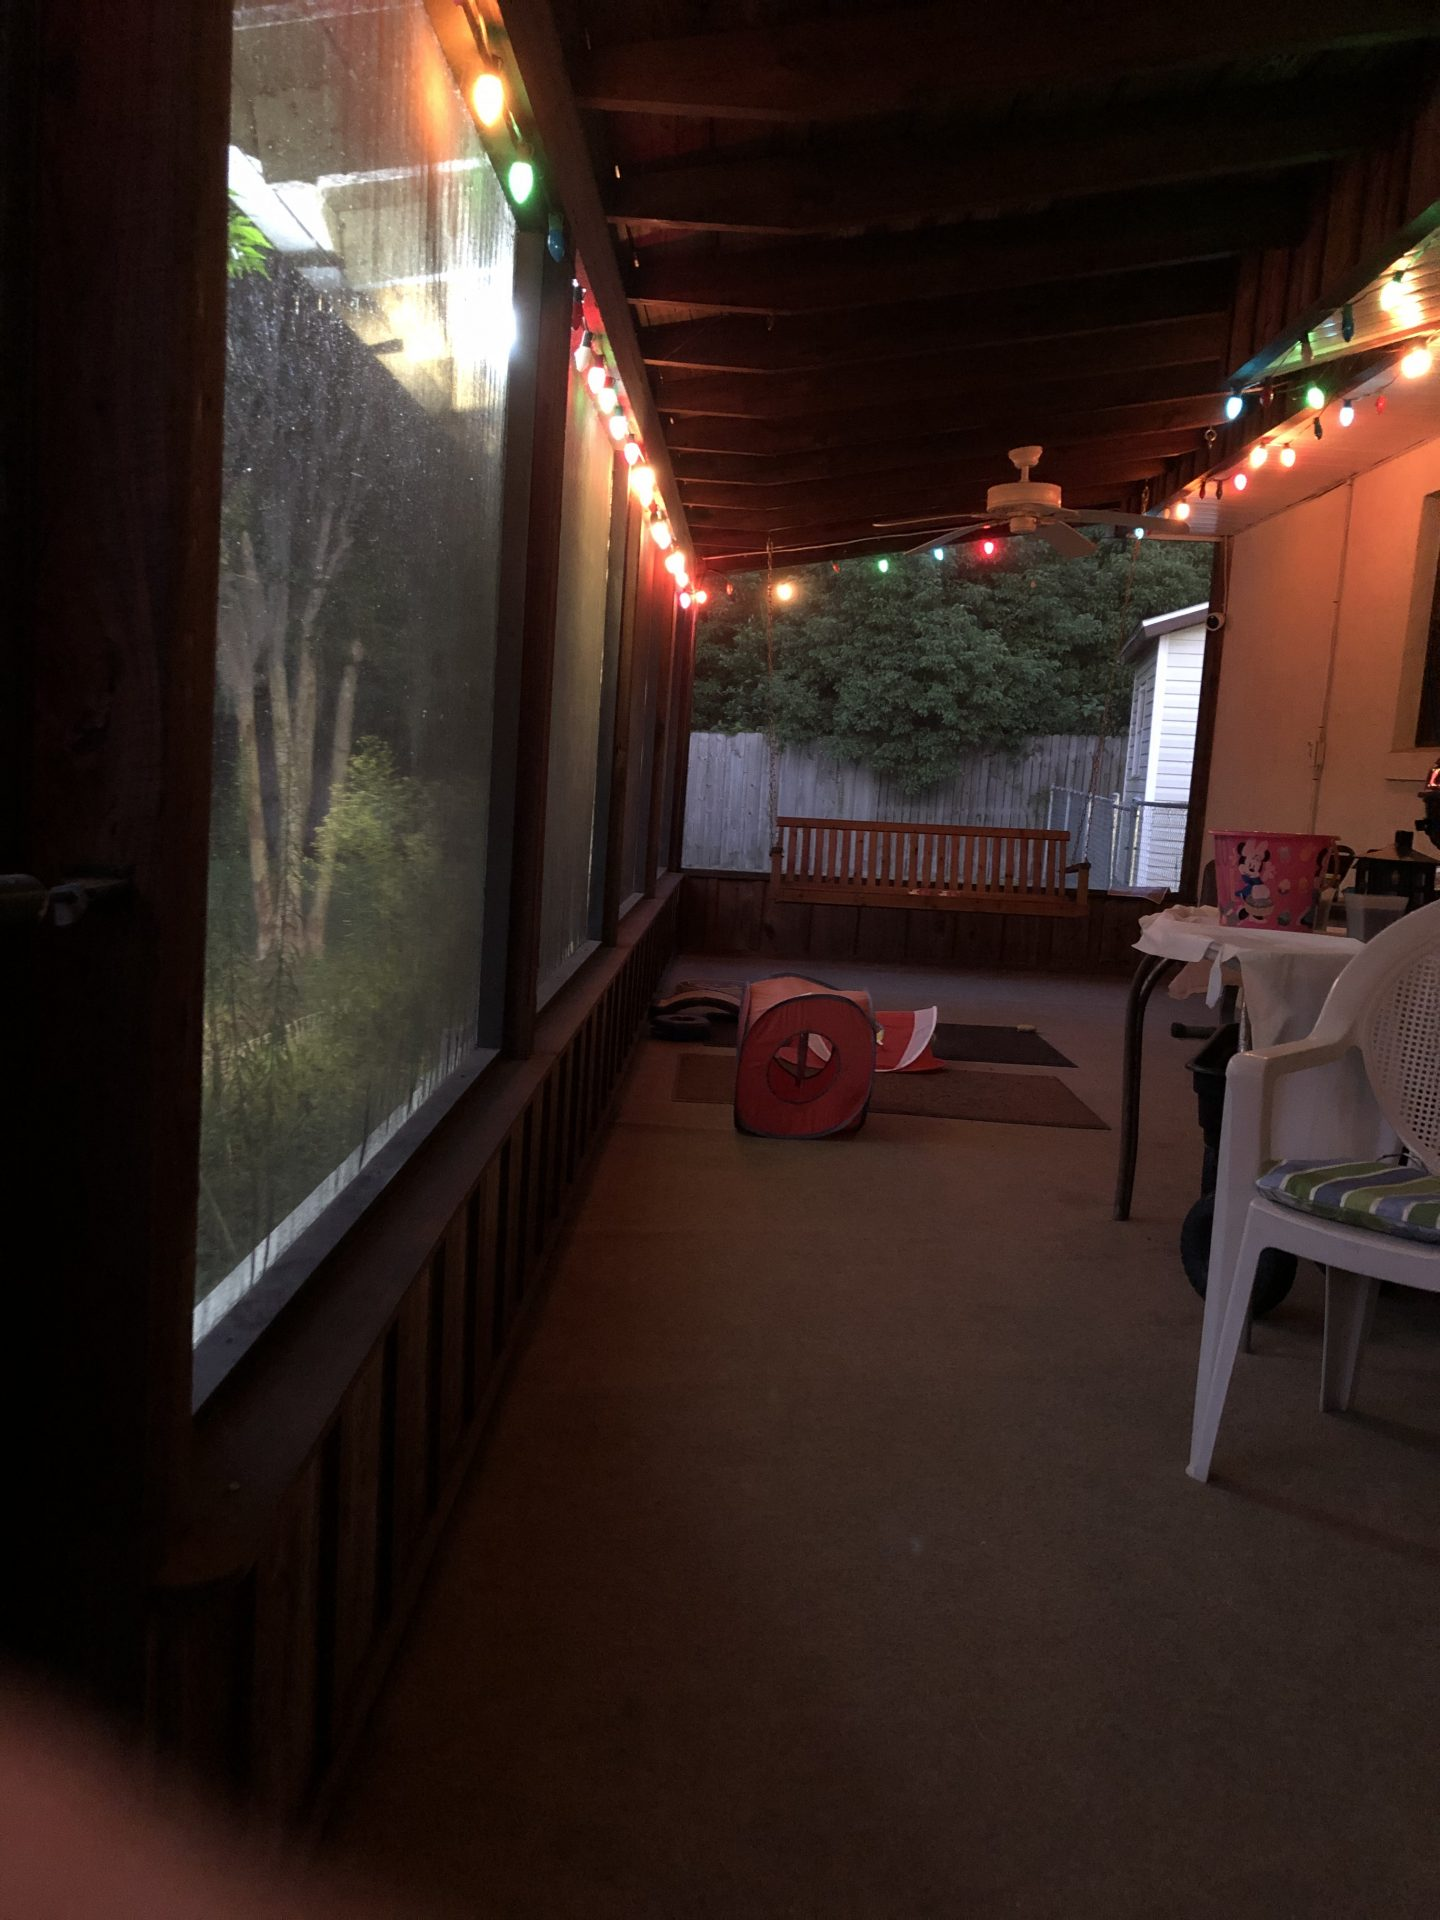 Come sit on the porch with me.  the drinks are cold and the friendship is free.  I know how you love this porch and these kitty cats